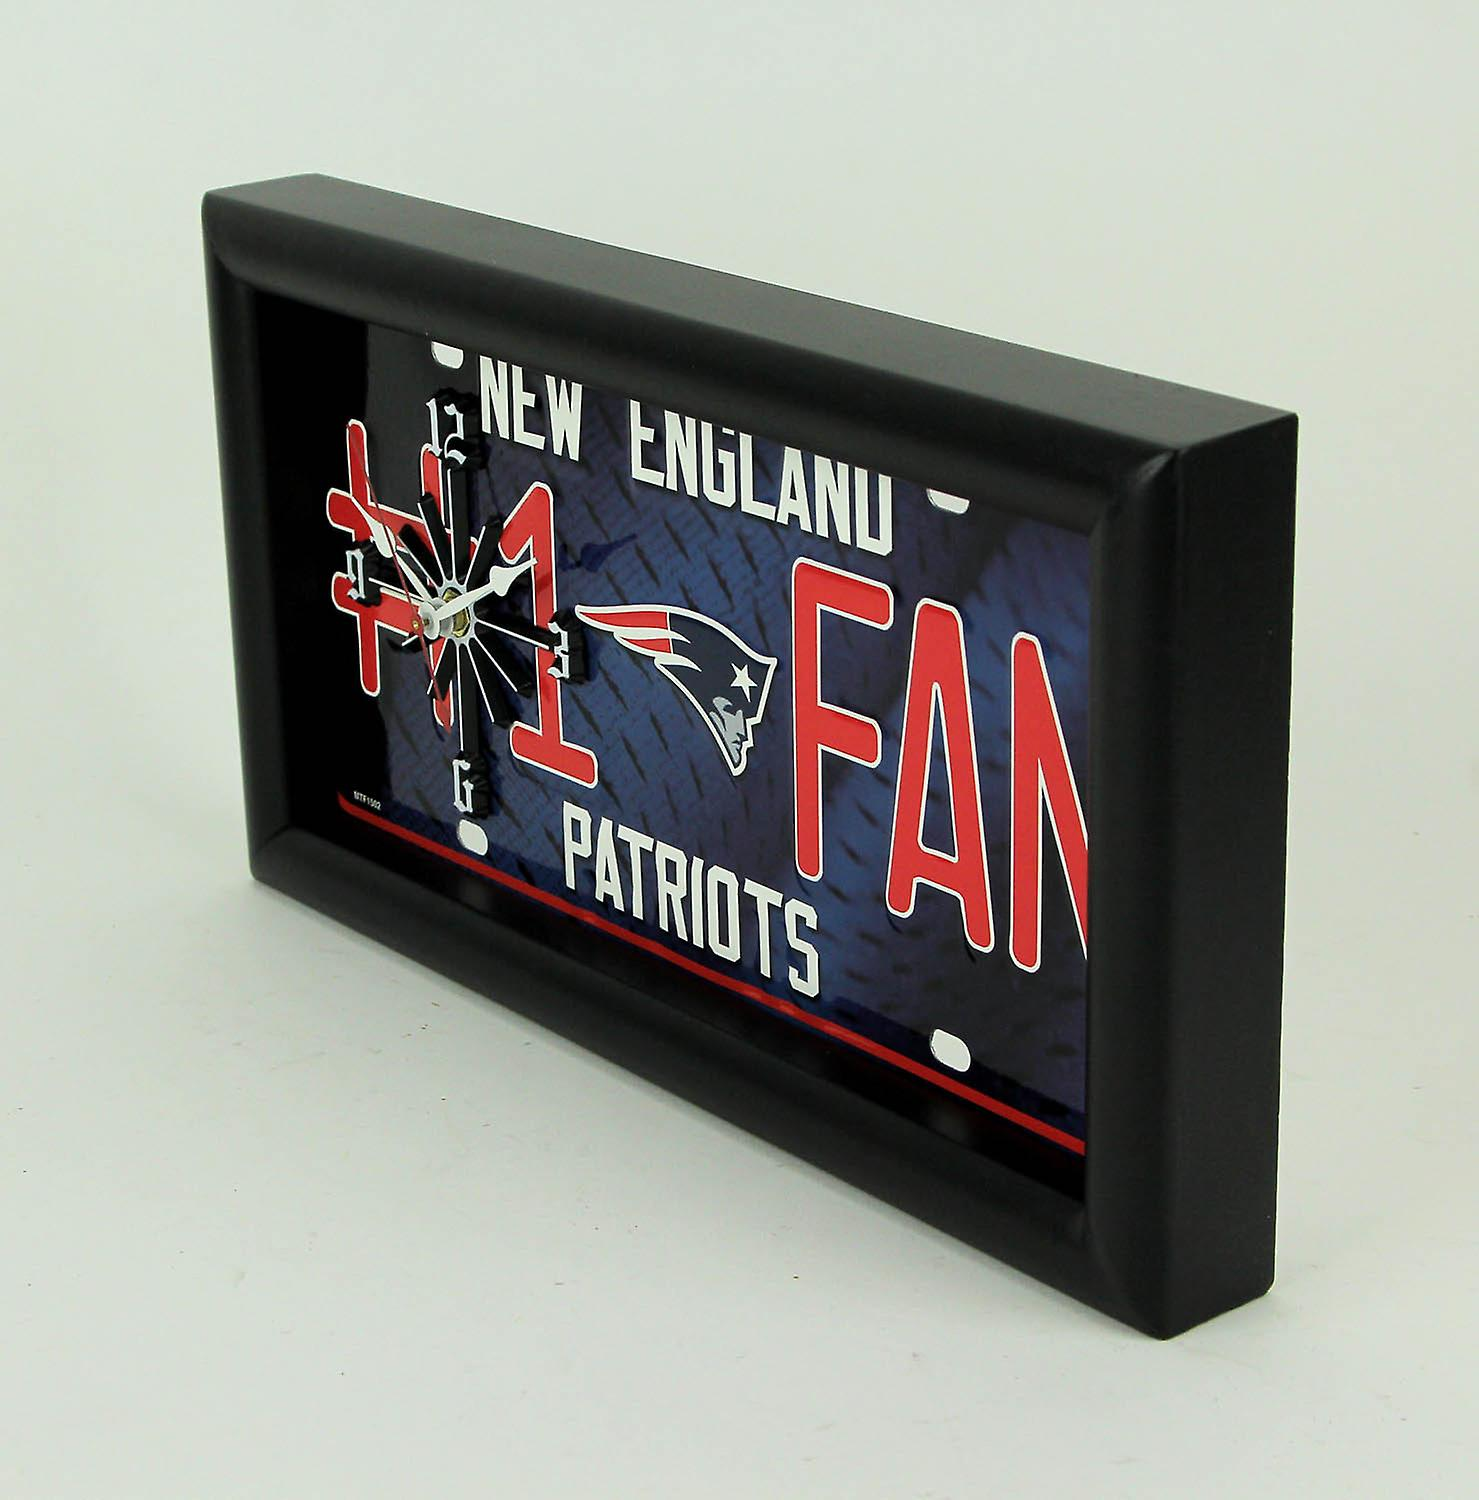 NFL New England Patriots Number 1 Football Fan License Plate Mantel Wall Cloc